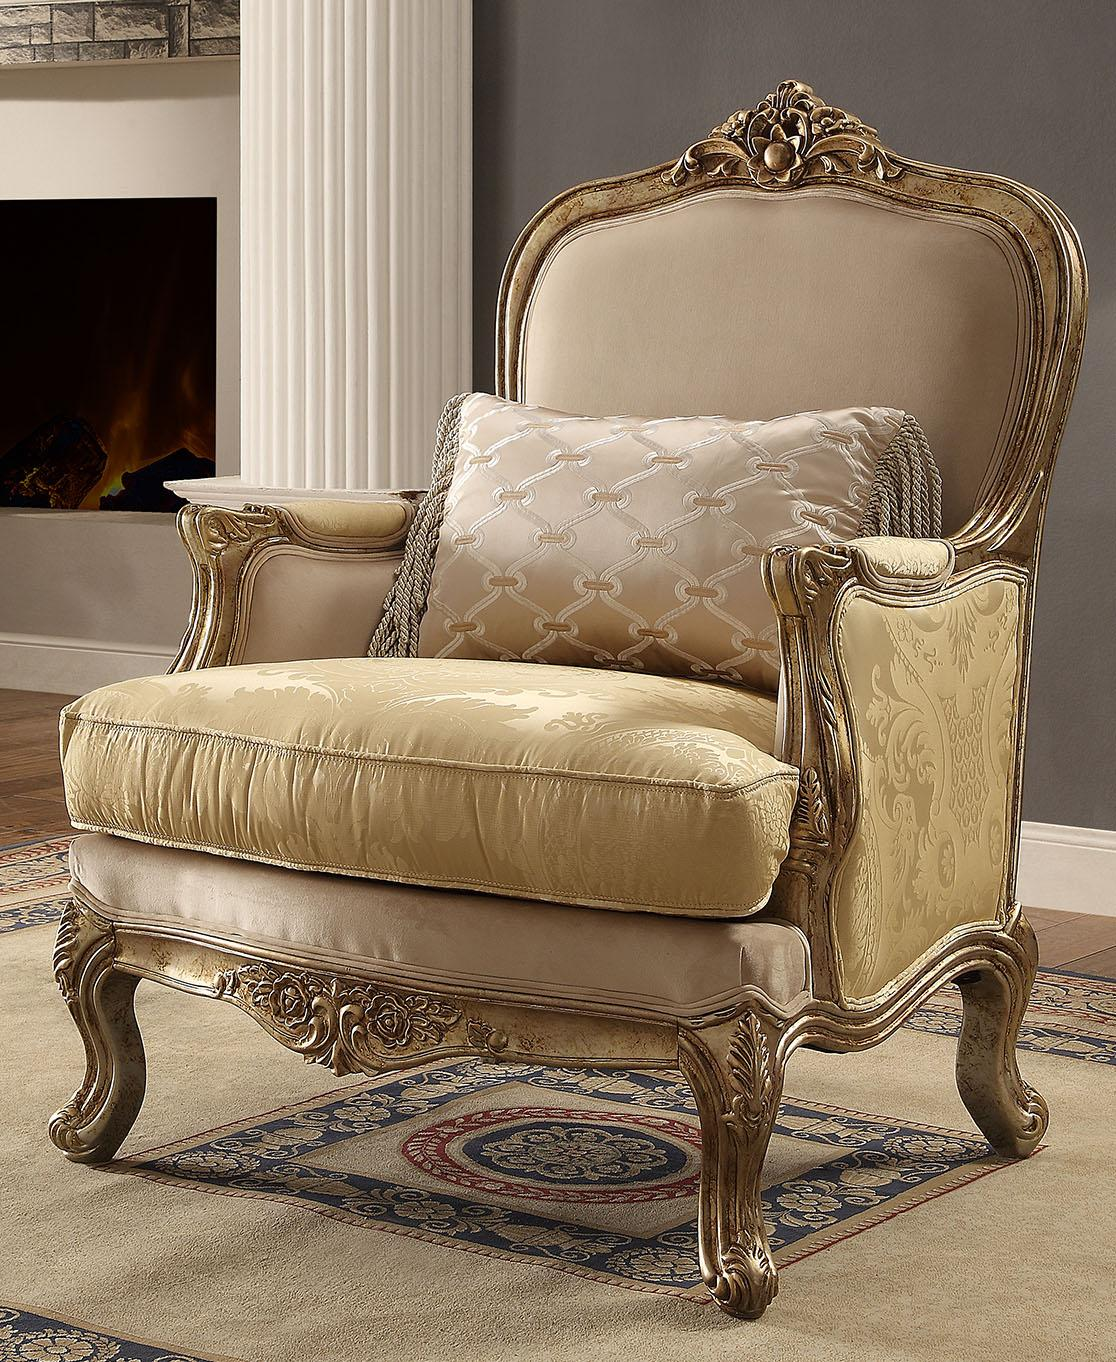 Traditional Luxury HD-2626 Chair in Champagne by Homey Design